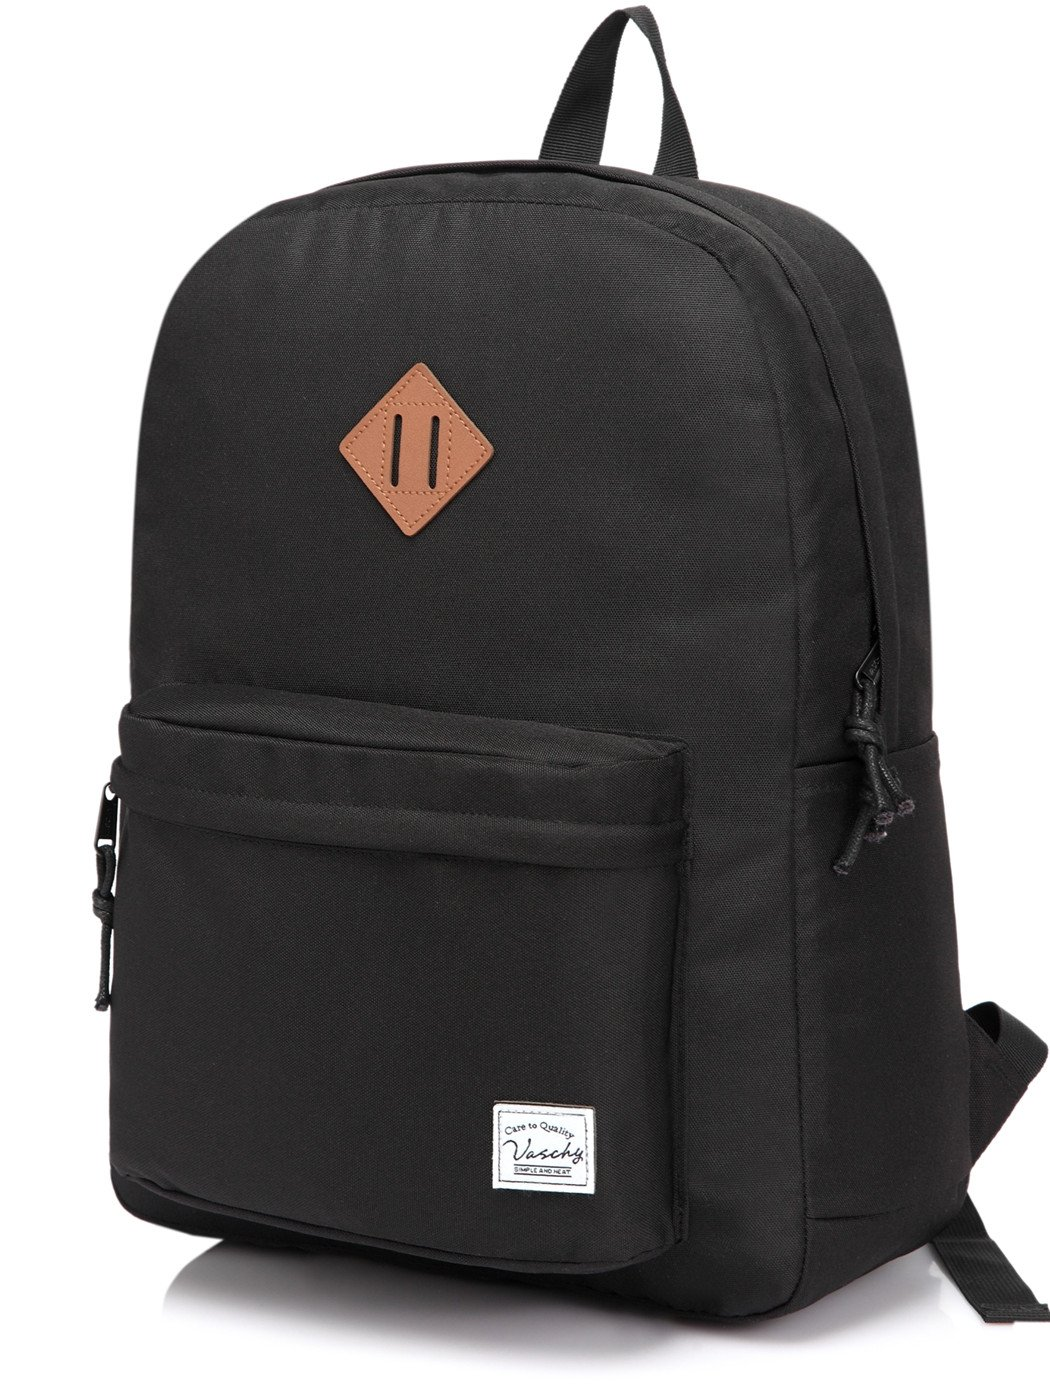 Lightweight Backpack for School, VASCHY Classic Basic Water Resistant Casual Daypack for Travel with Bottle Side Pockets (Black) by VASCHY